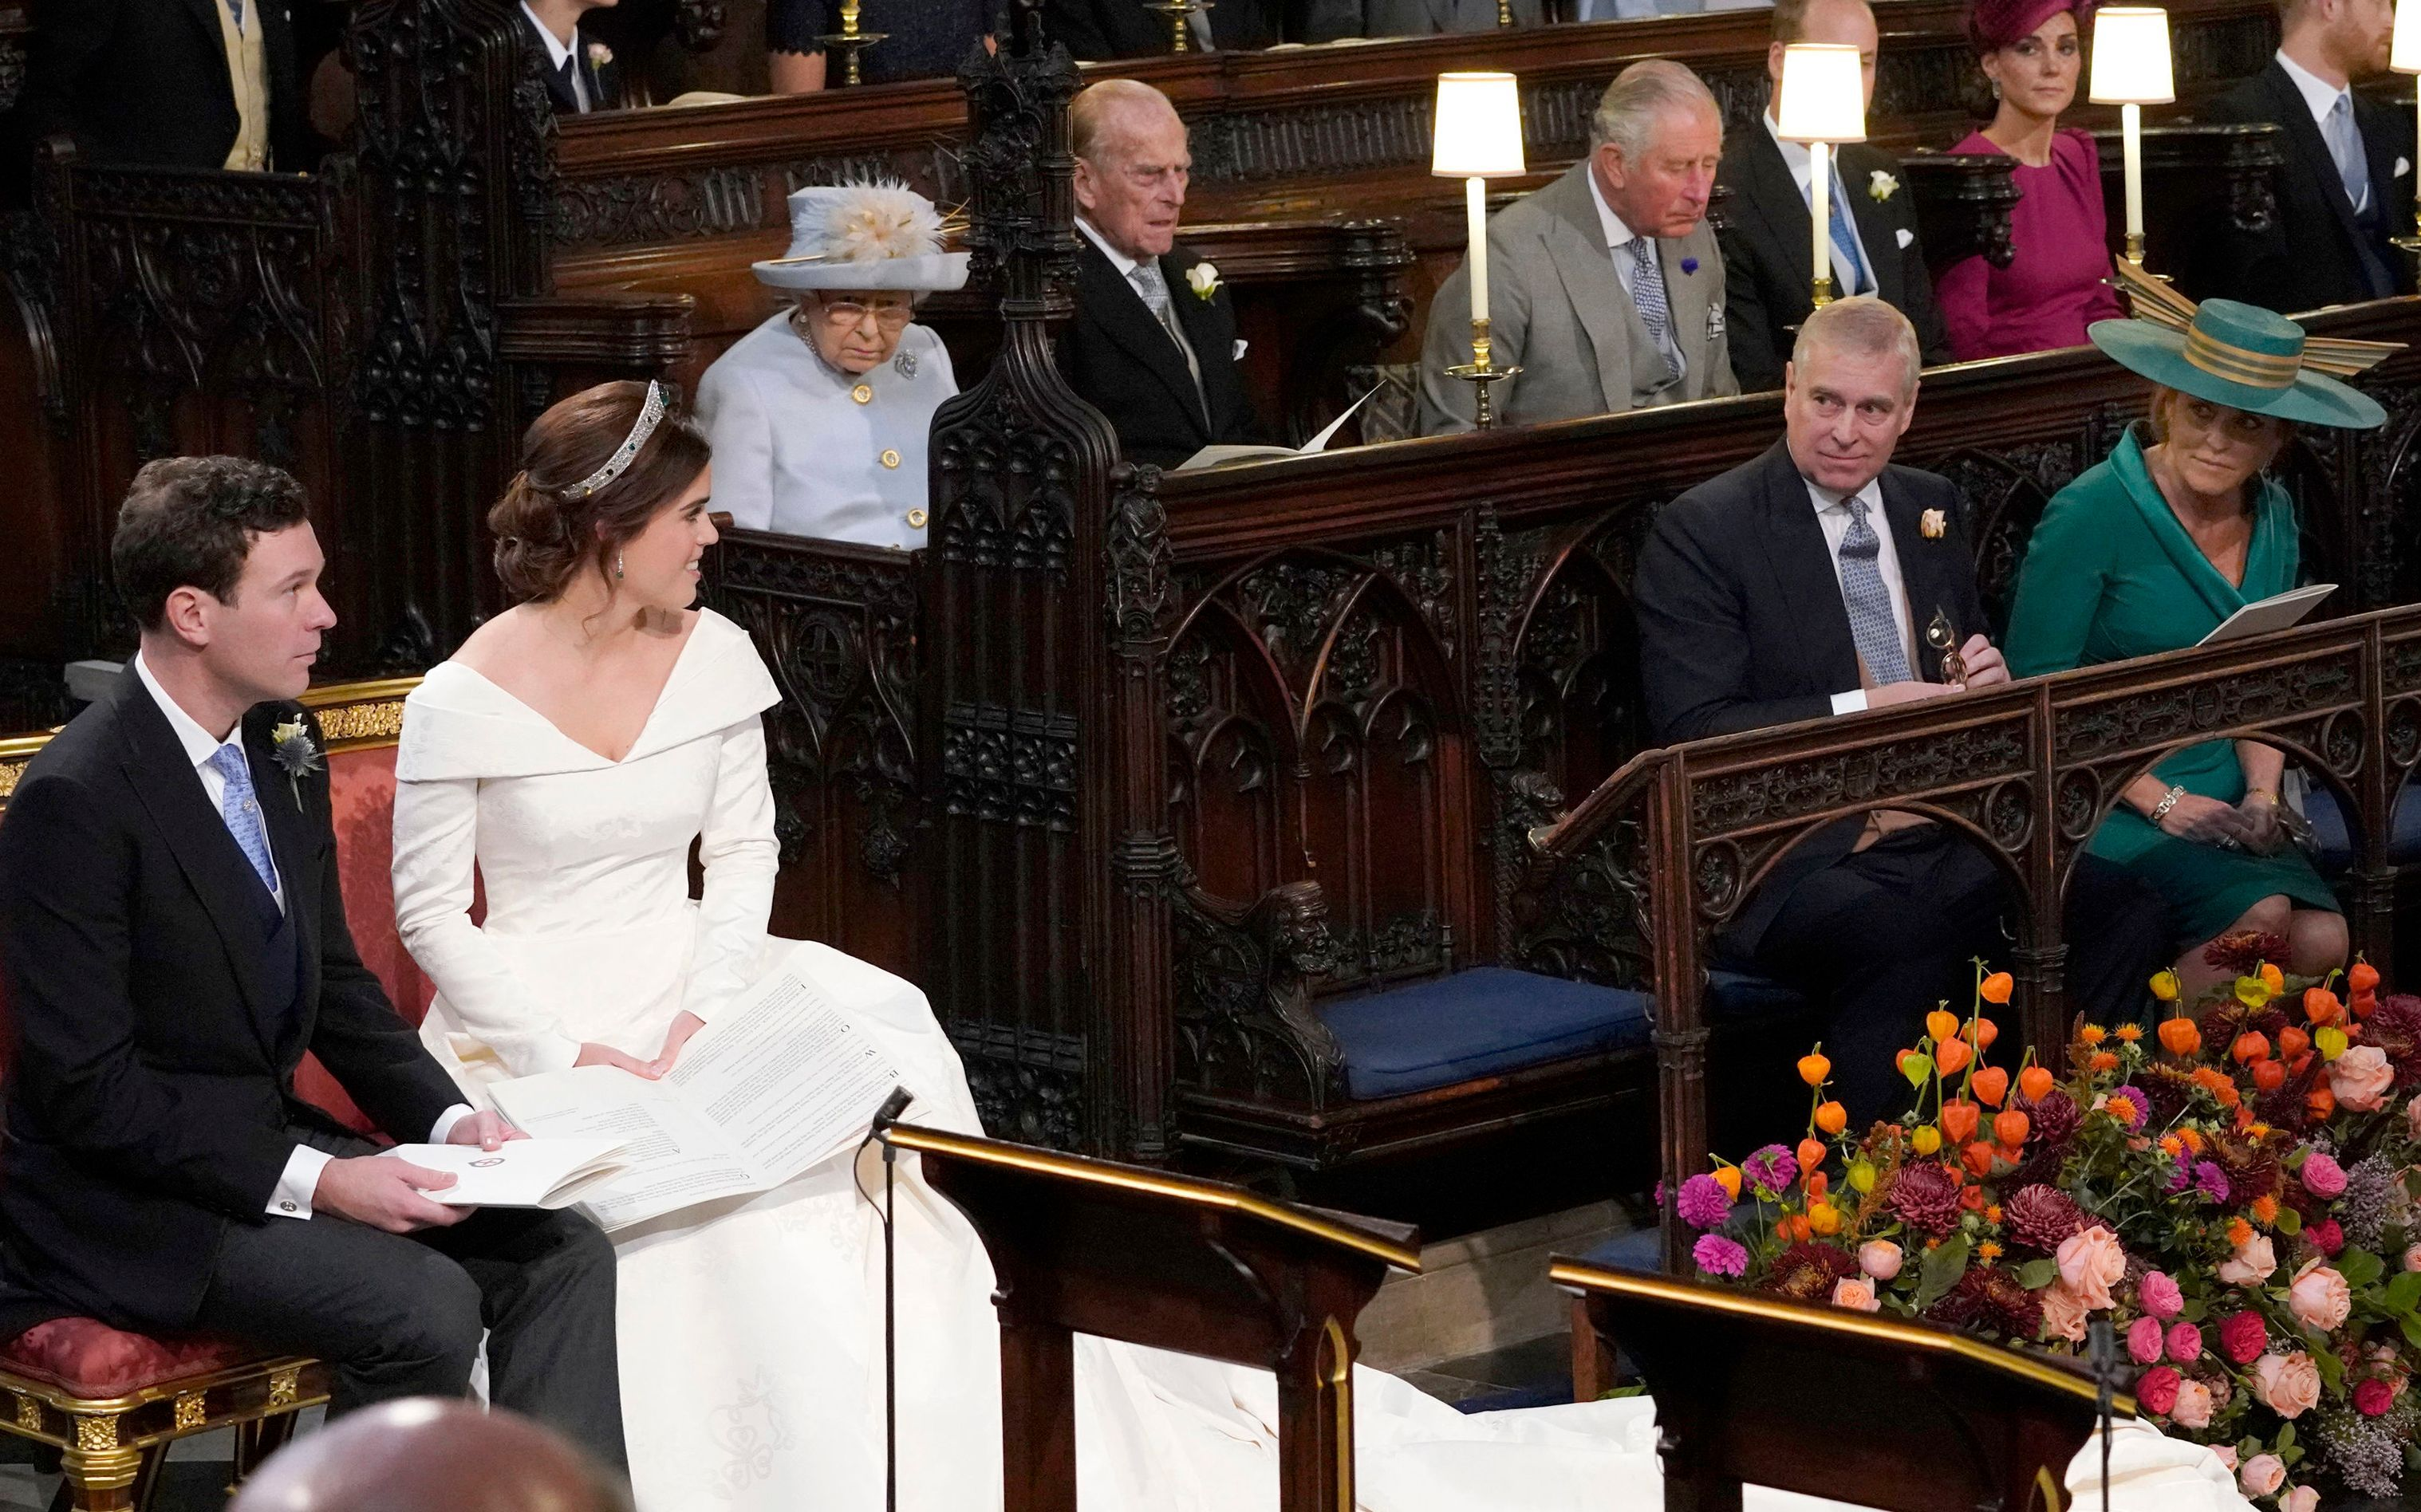 Princess Eugenie Royal Wedding Photos Pictures Of The 2nd Royal